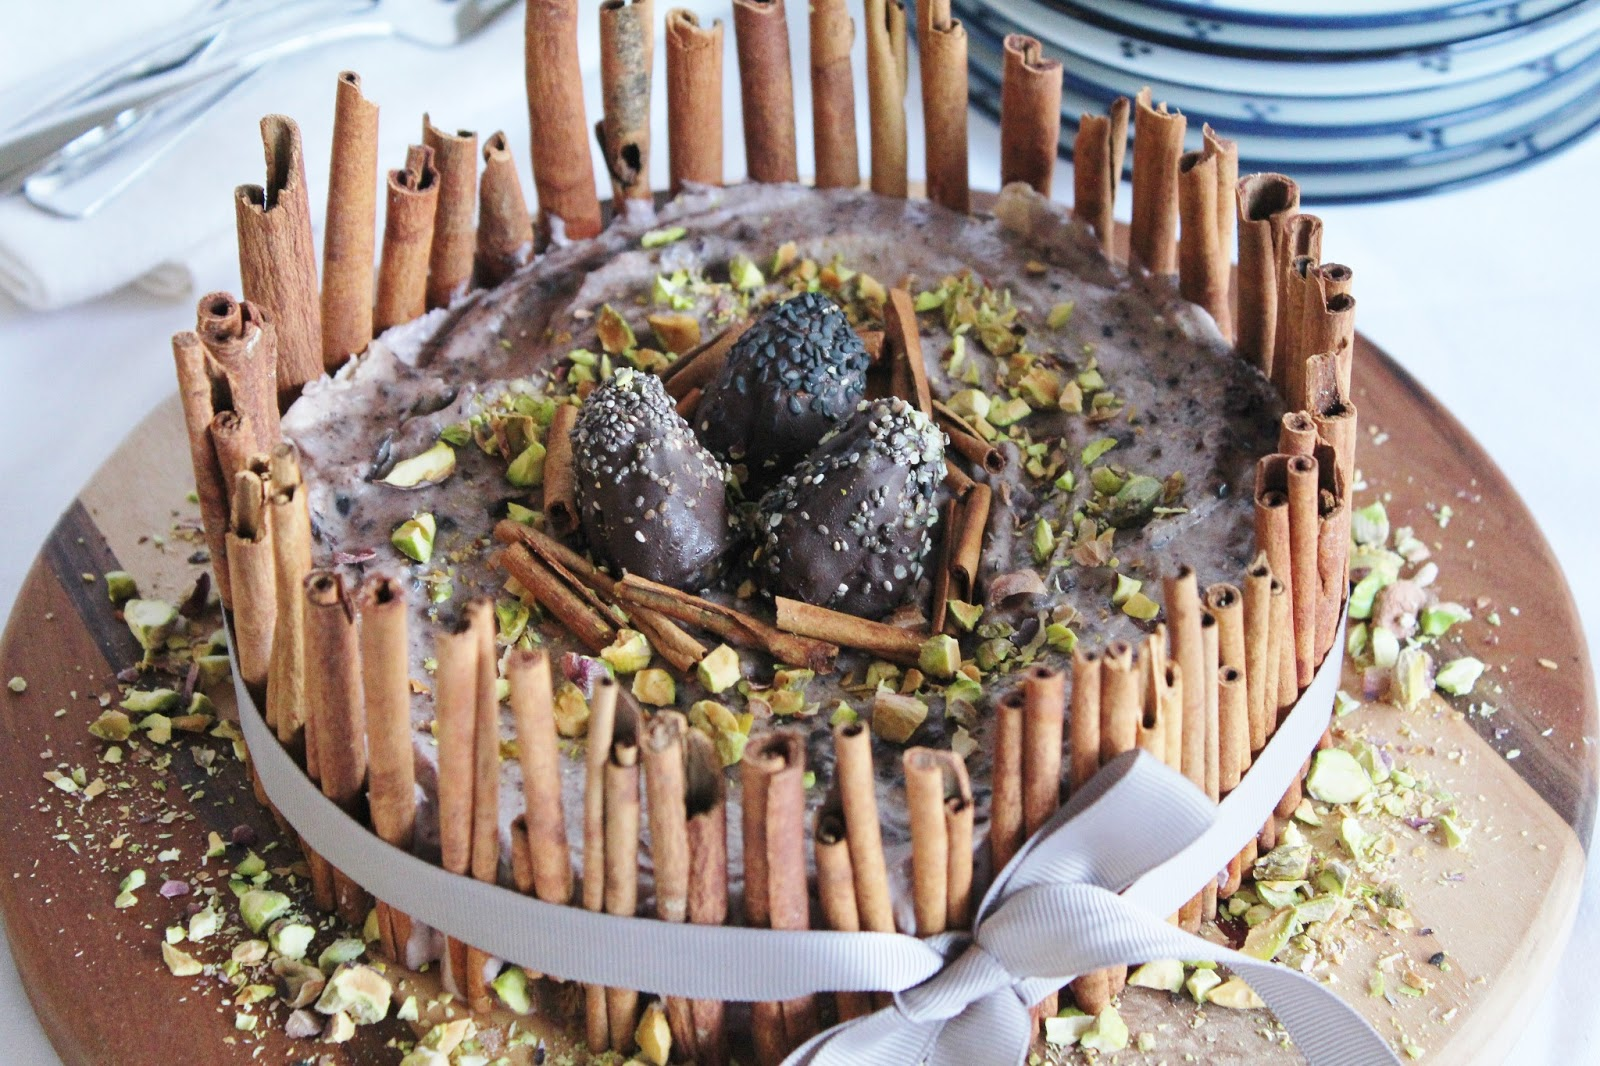 Berry Ice Cream Cake With Chocolate Eggs Pistachios And Cinnamon